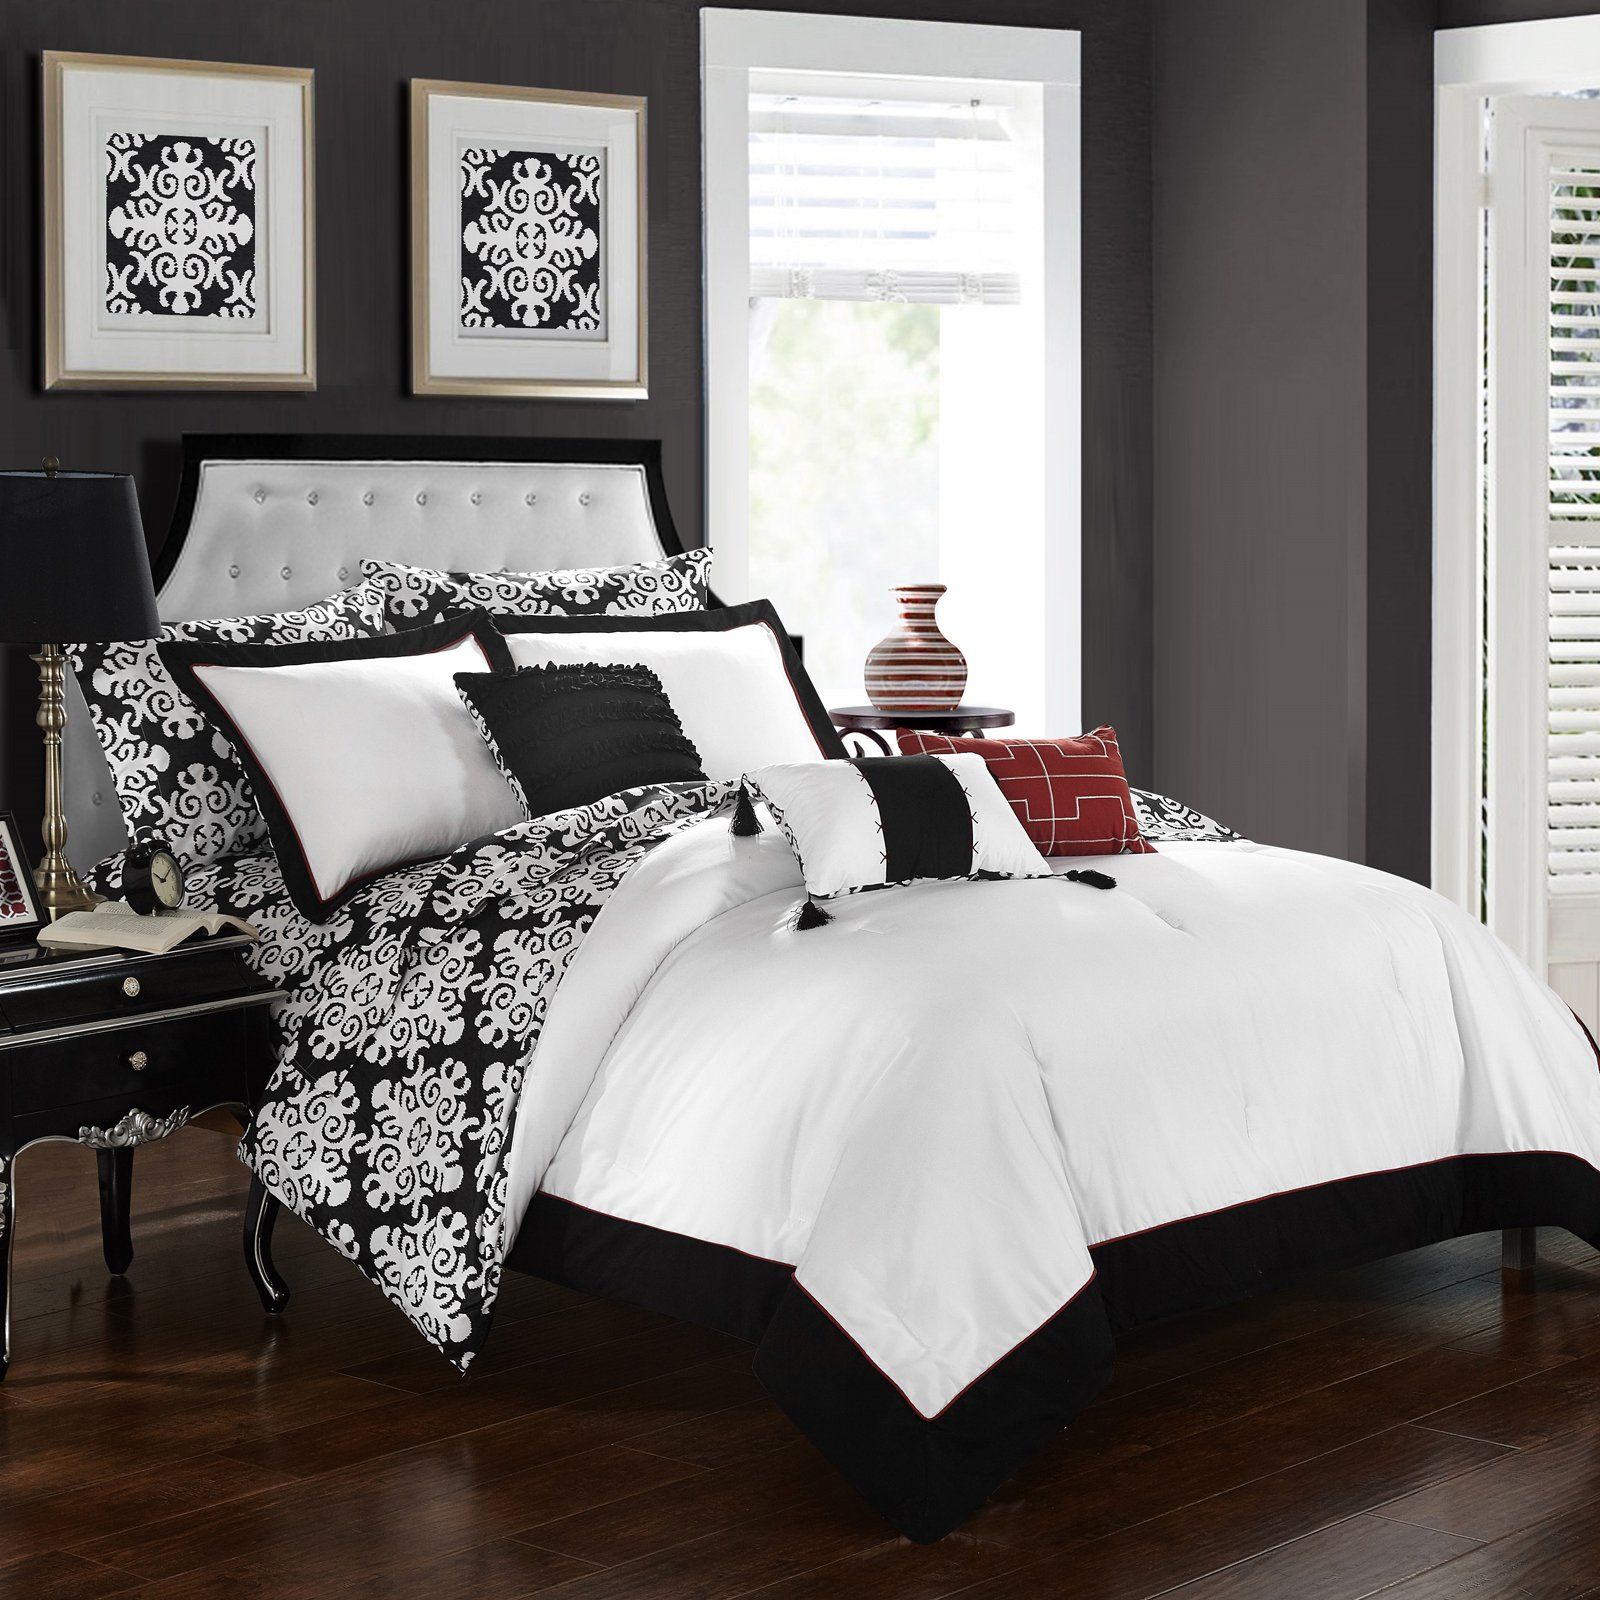 Chic Home Lalita Hotel Collection Reversible Bed In A Bag Comforter